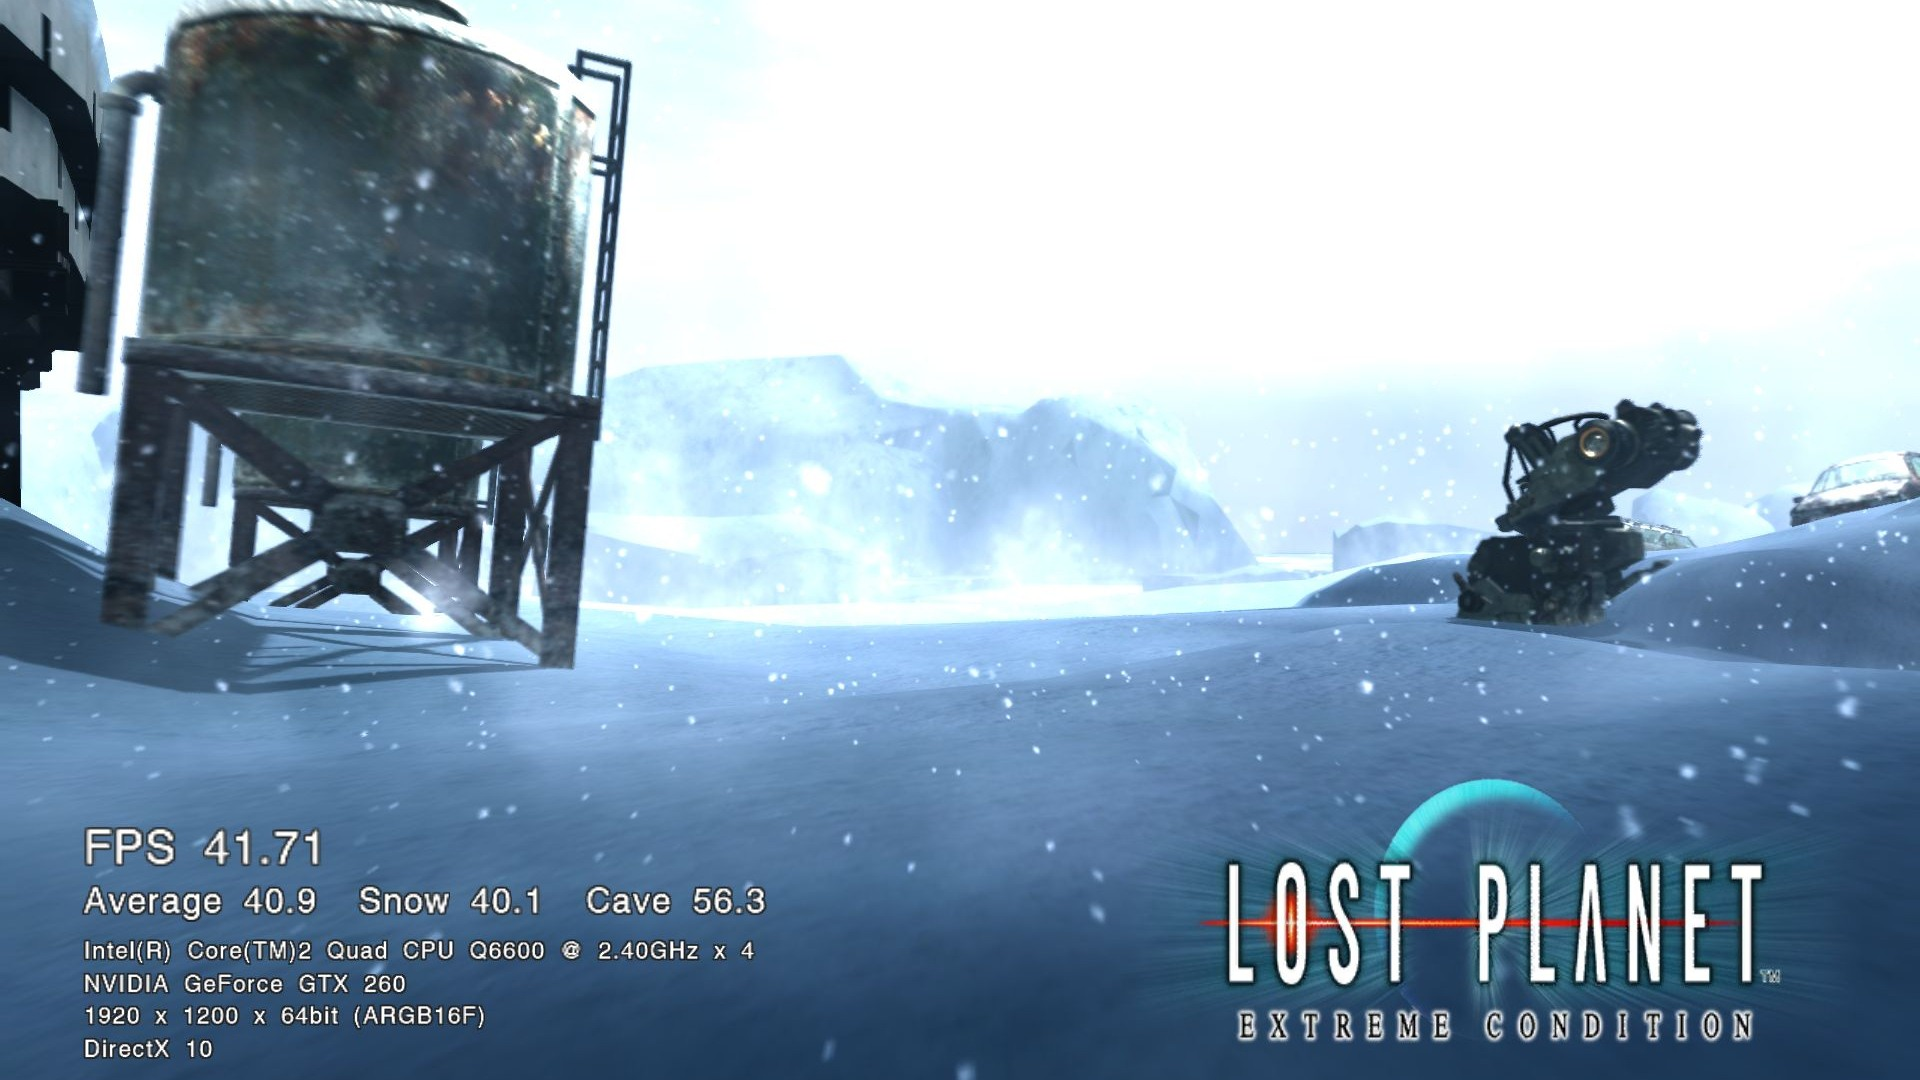 lost planet extreme condition hd wallpapers 13